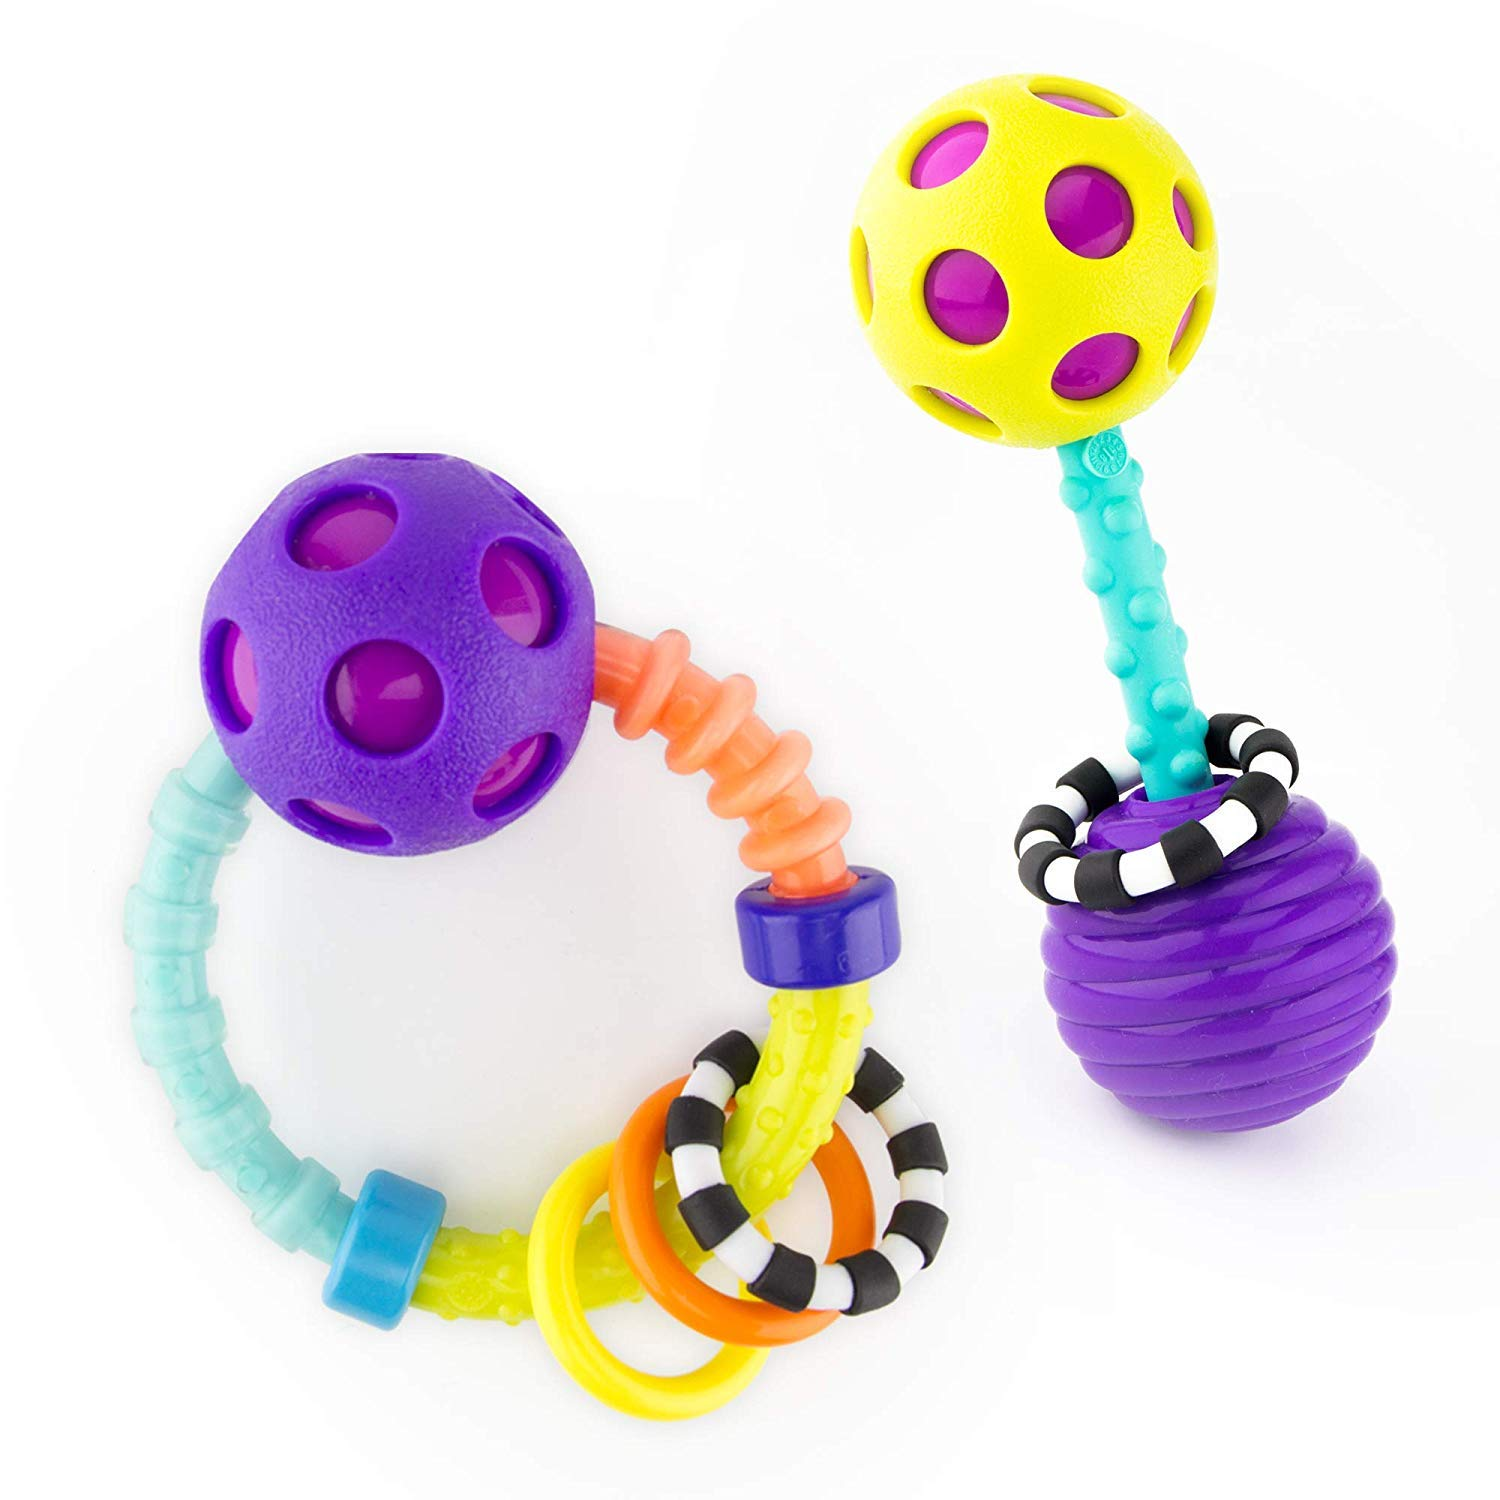 Sassy My First Bend & Flex Rattle Set - 2 Piece - for Ages 0+ Months